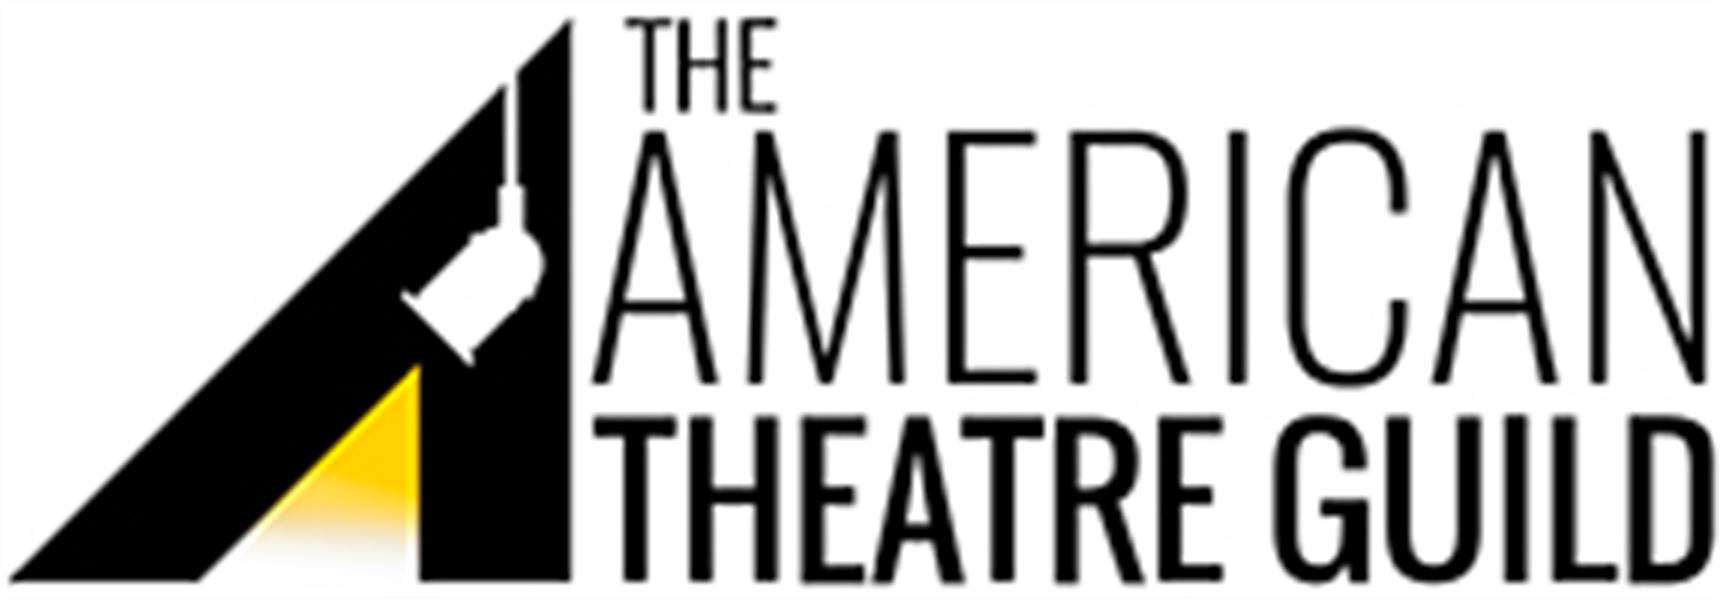 The American Theatre Guild